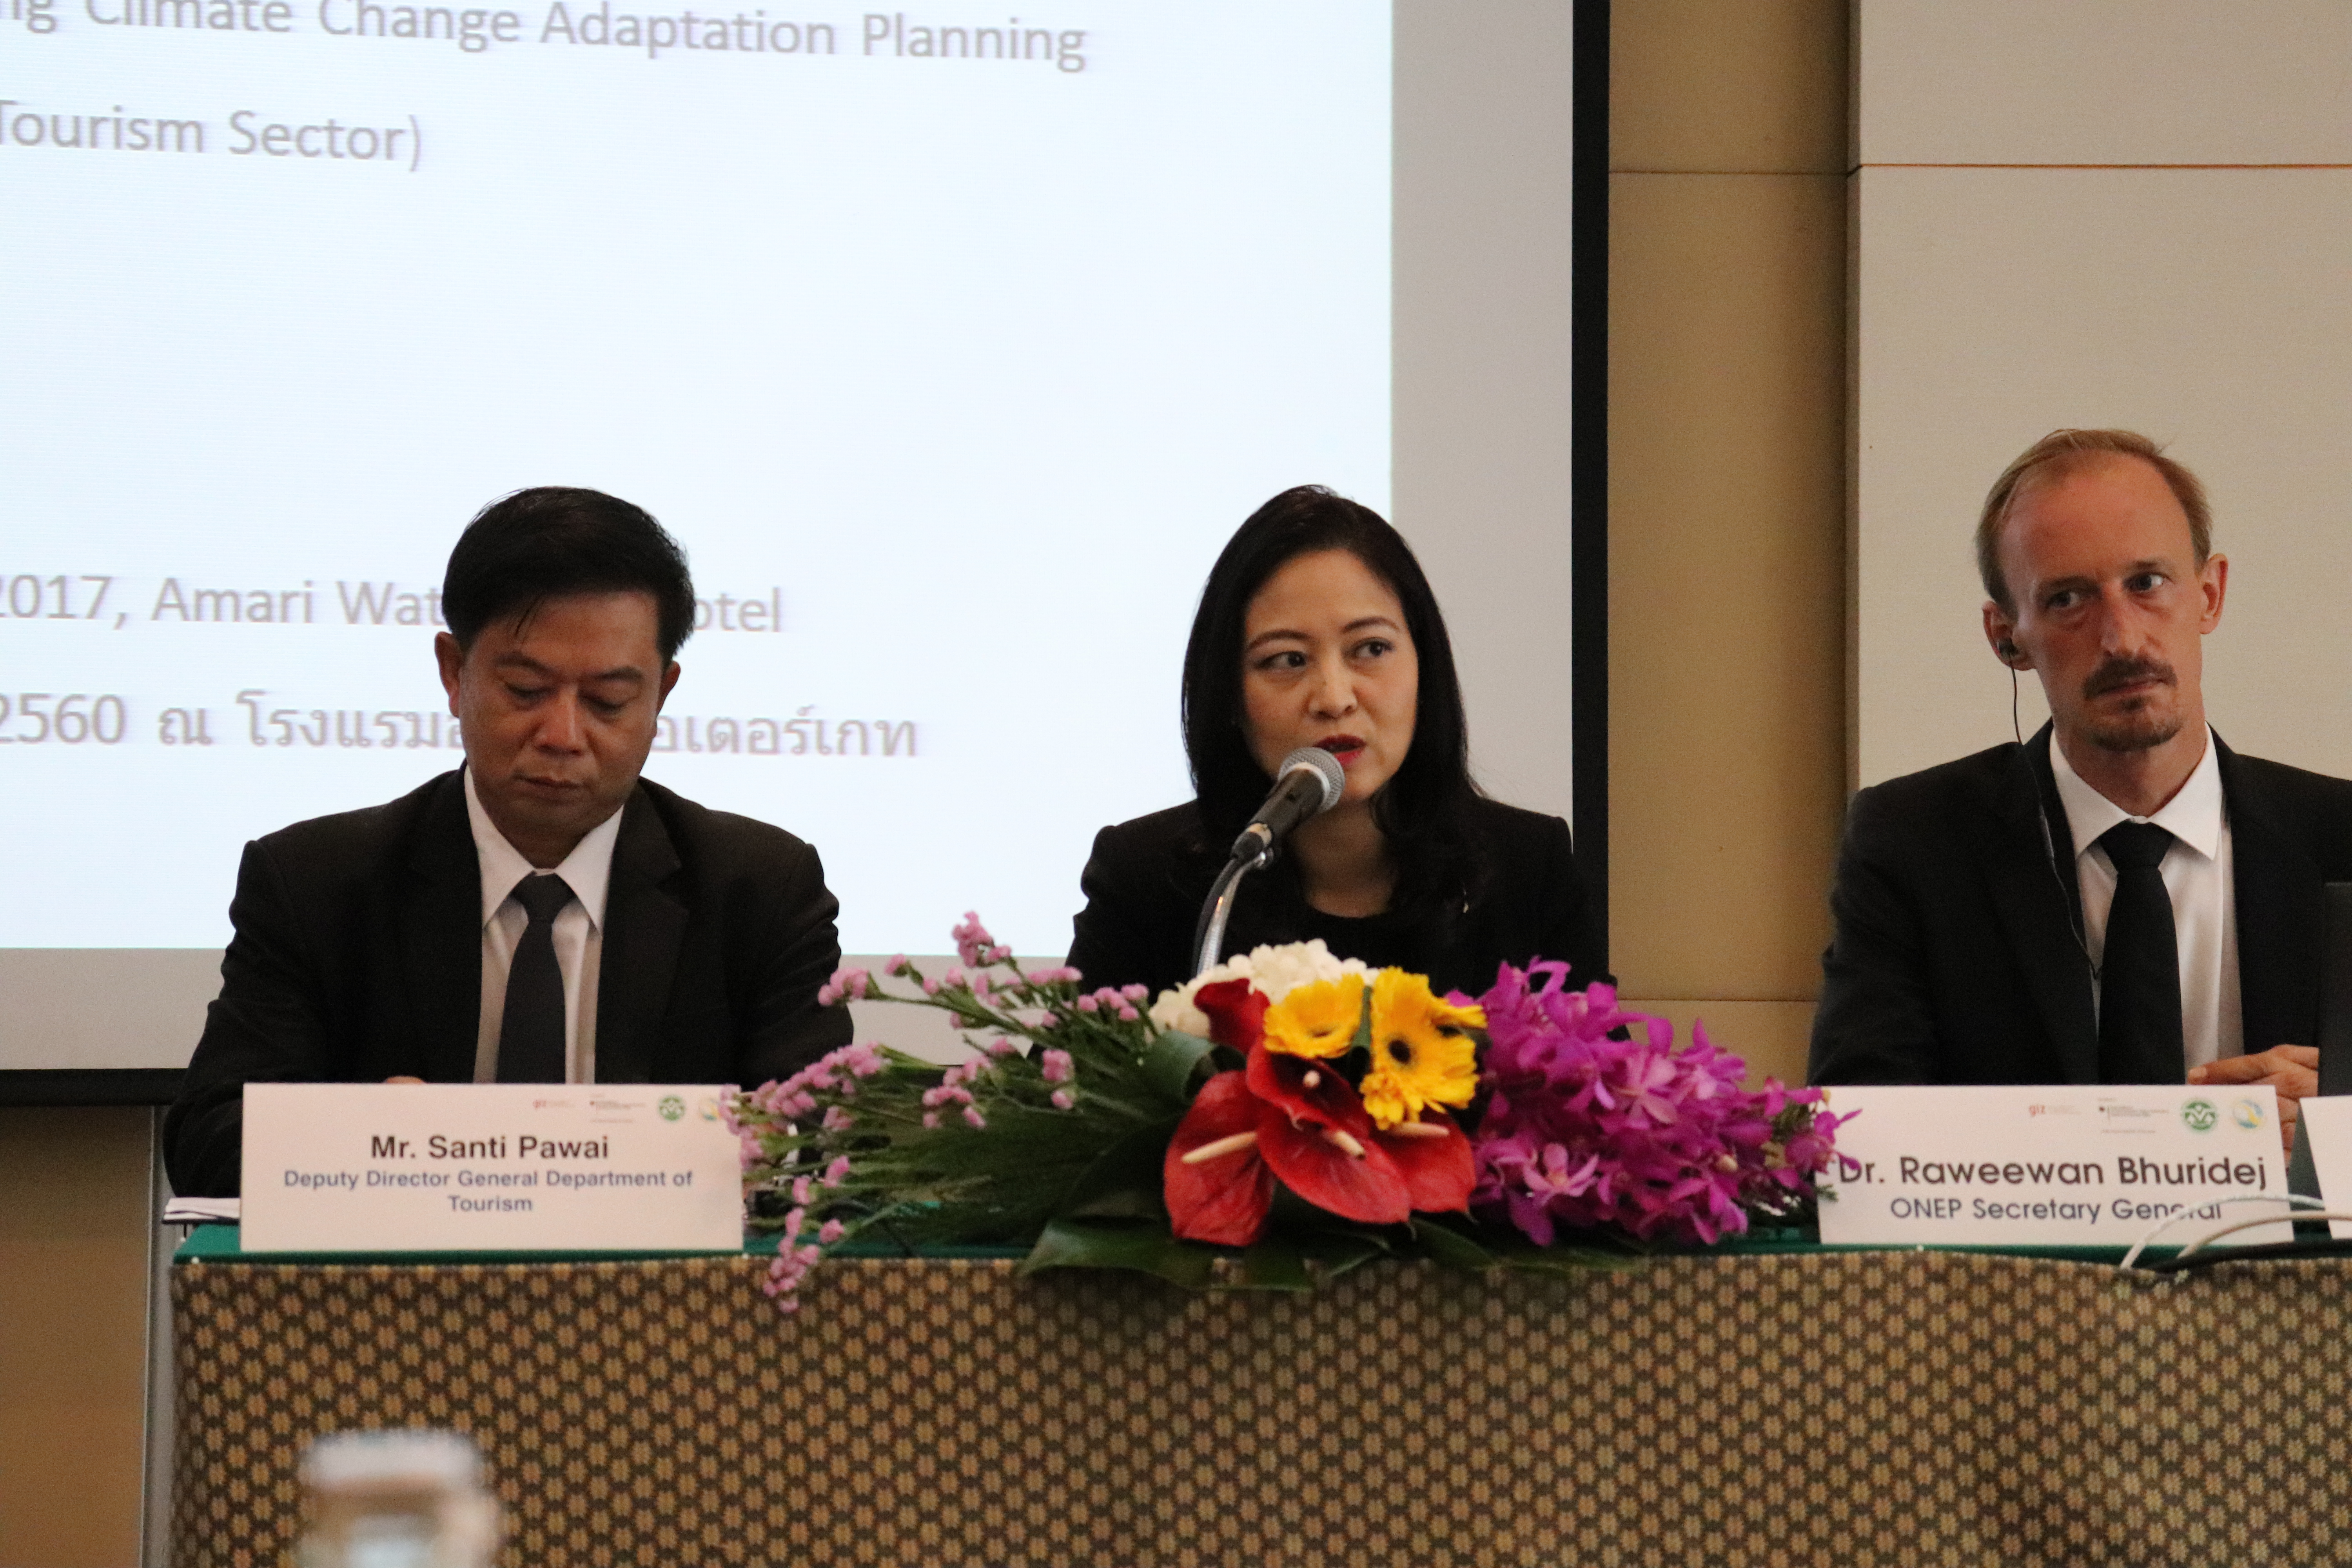 Bridging the gaps: 1st step in mainstreaming climate change adaptation in tourism sector